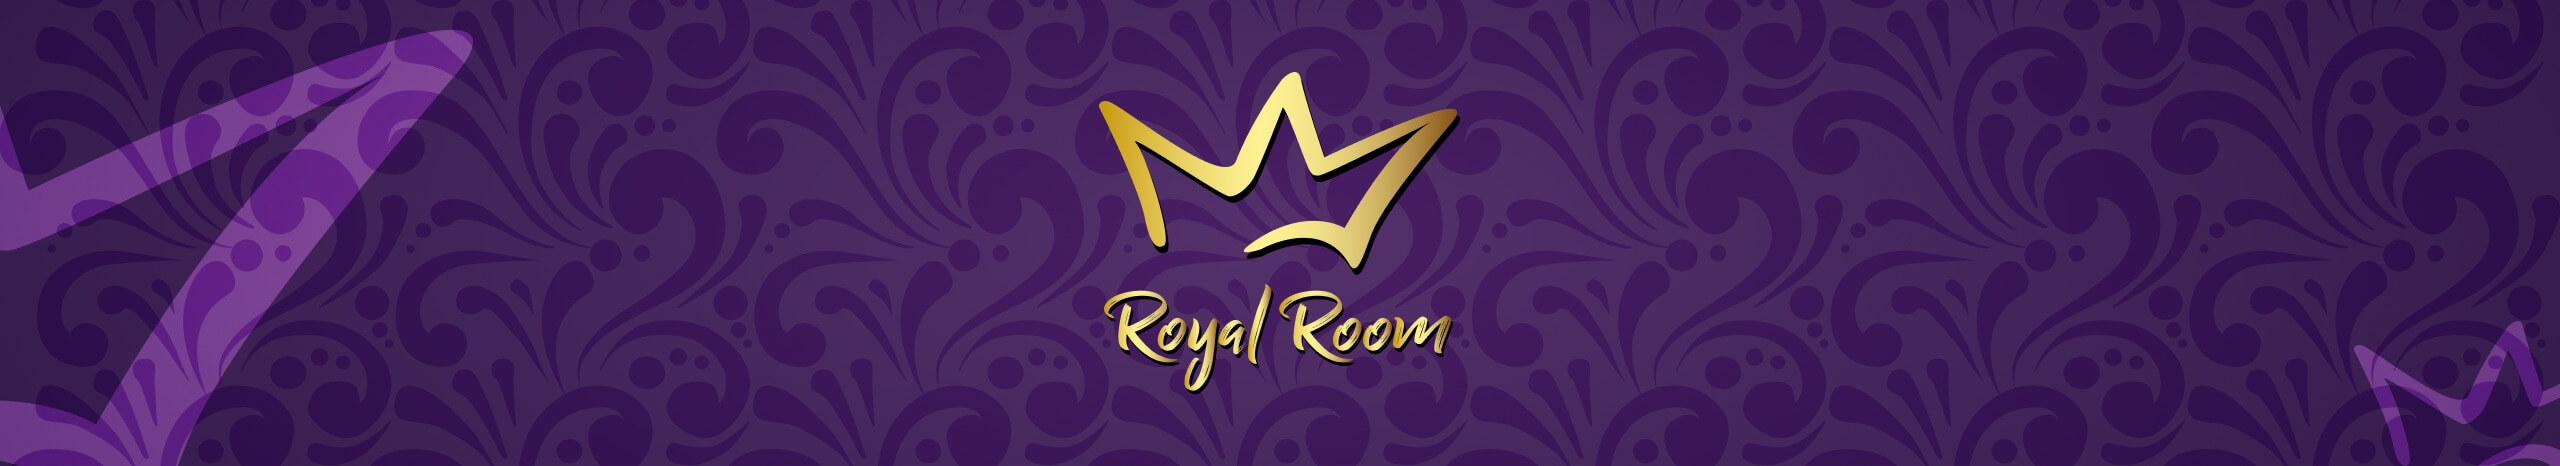 Ever wondered what it would be like to be a VIP? Look no further because in our Royal Room, we treat you like our very own King and Queen.